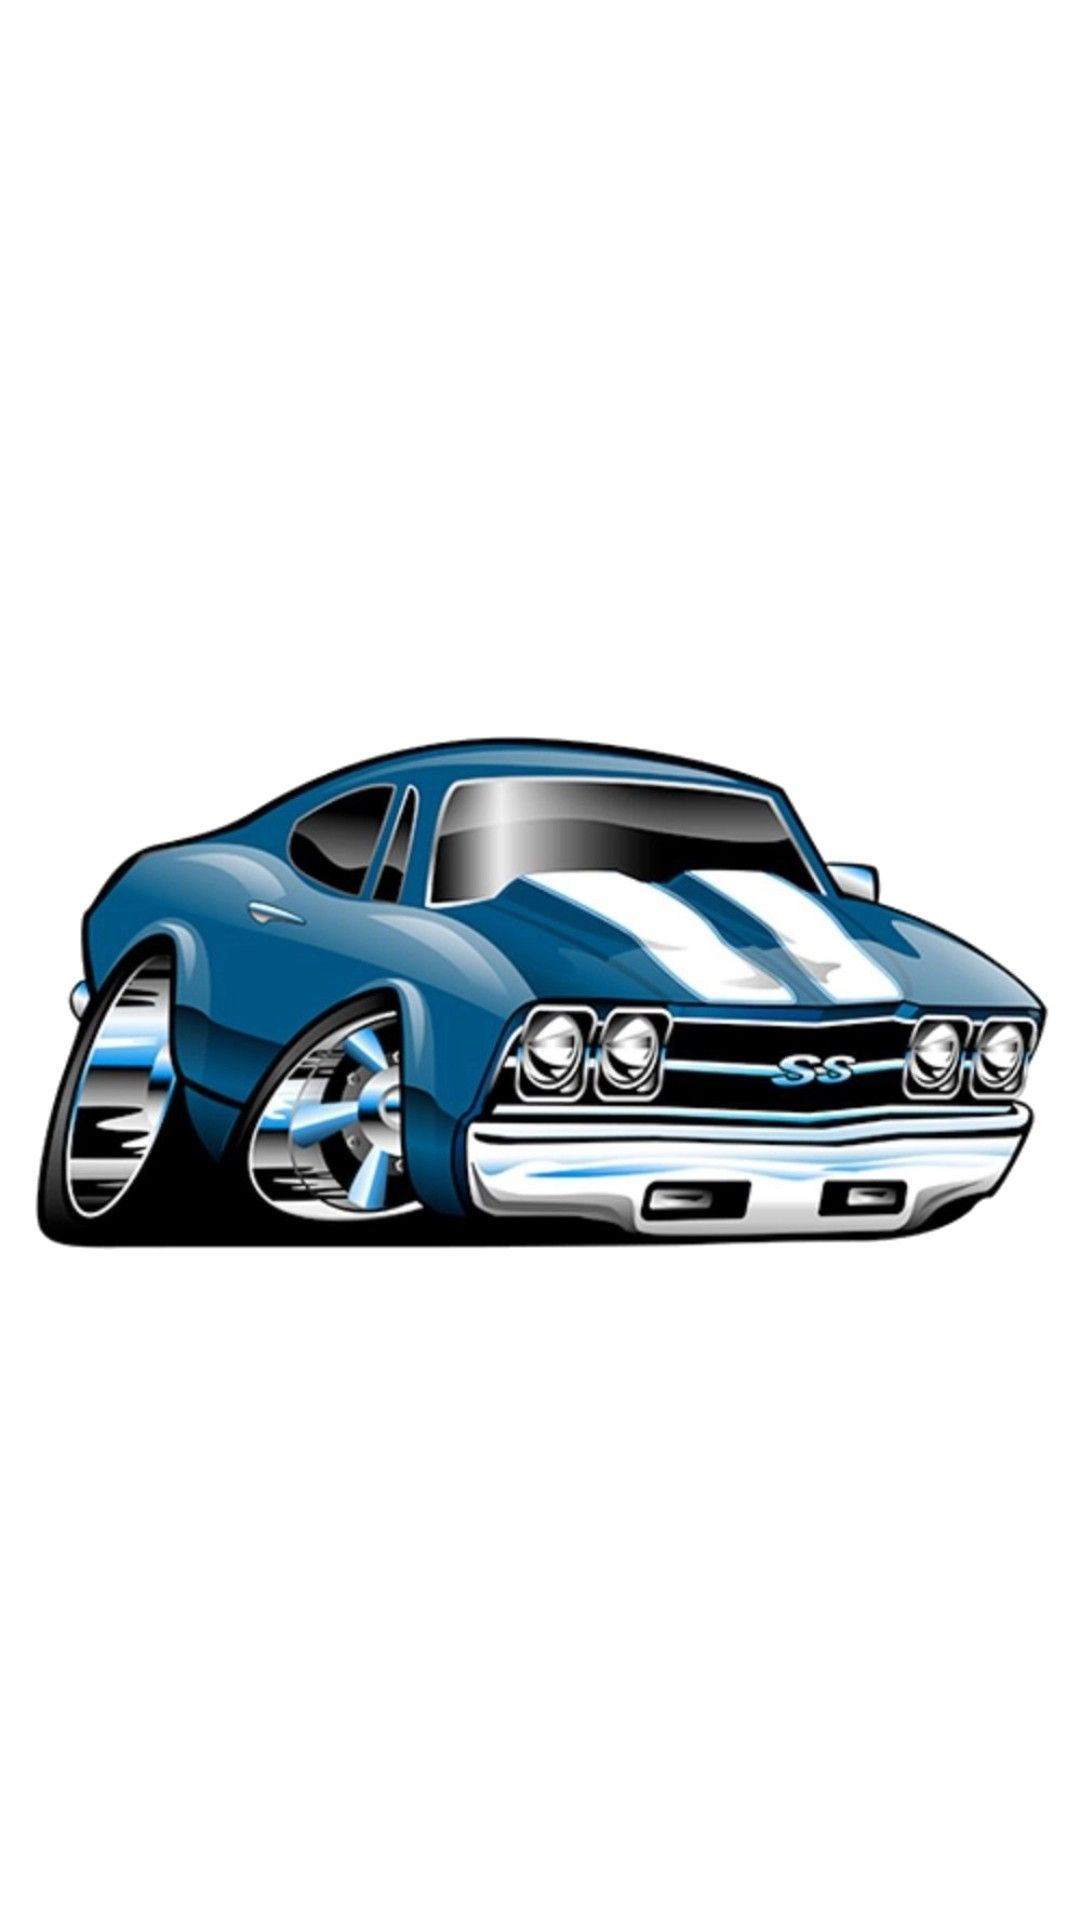 Pin De John Rielo En Cartoon Cars Cars Dibujos Carro Dibujo Y